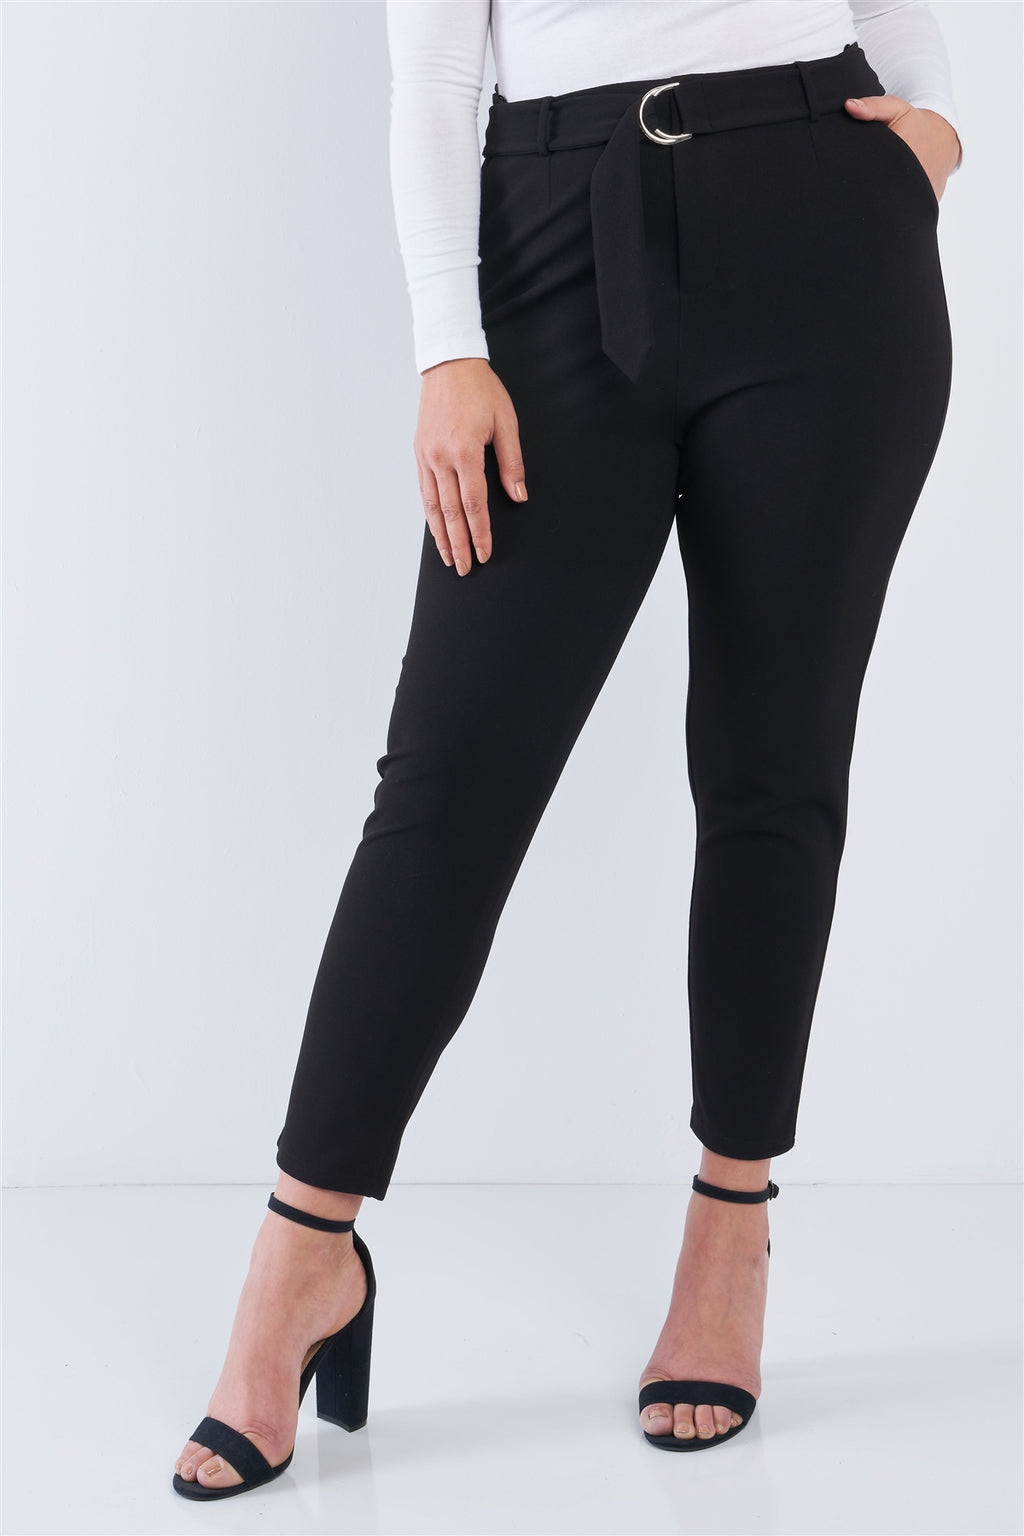 Plus Size High Waist Ankle Length Pants - Lookeble